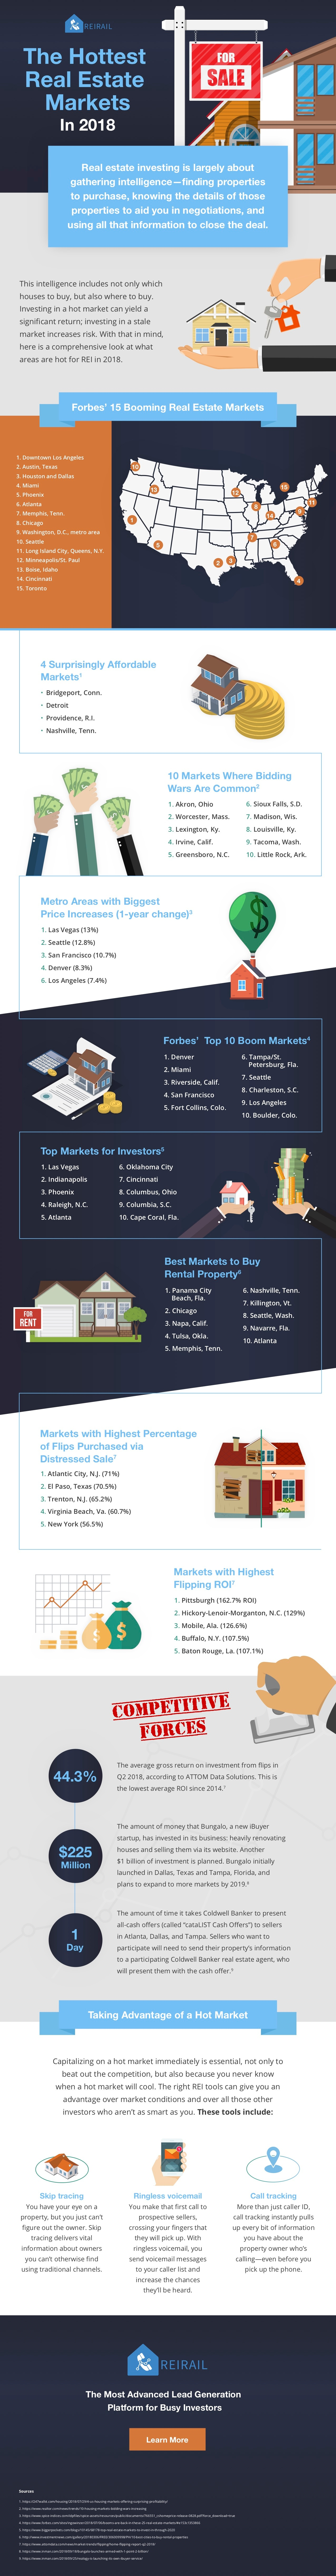 Infographic - Hottest Real Estate Markets in 2018